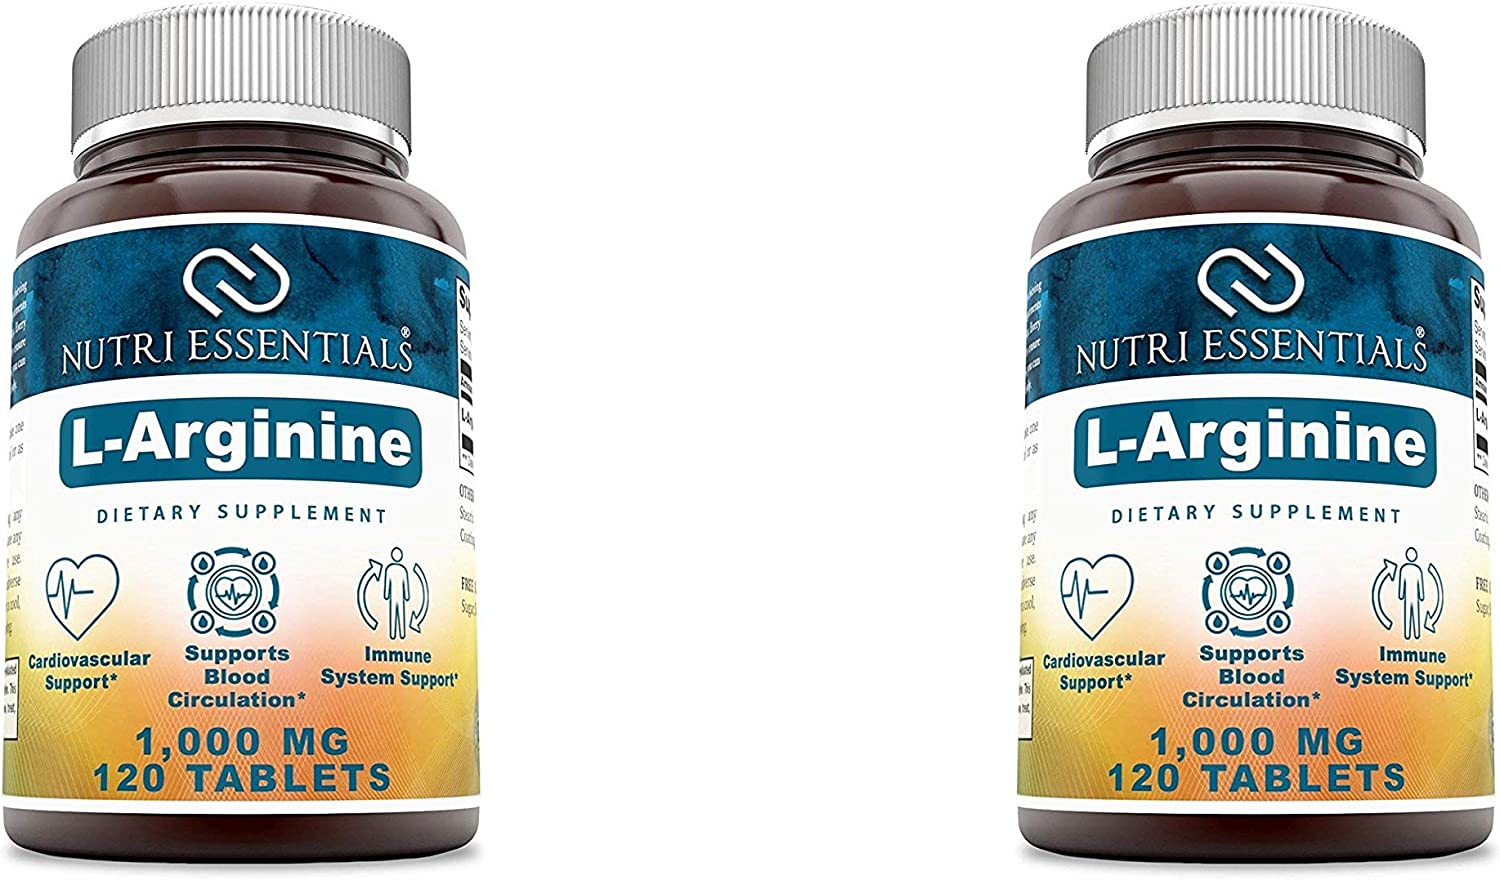 Nutri Essentials L-Arginine 1000 Mg 120 Tablets Dietary Supplement - Supports Cardiovascular Health - Supports Immune System Functions - Promotes Blood Circulation (Pack of 2)